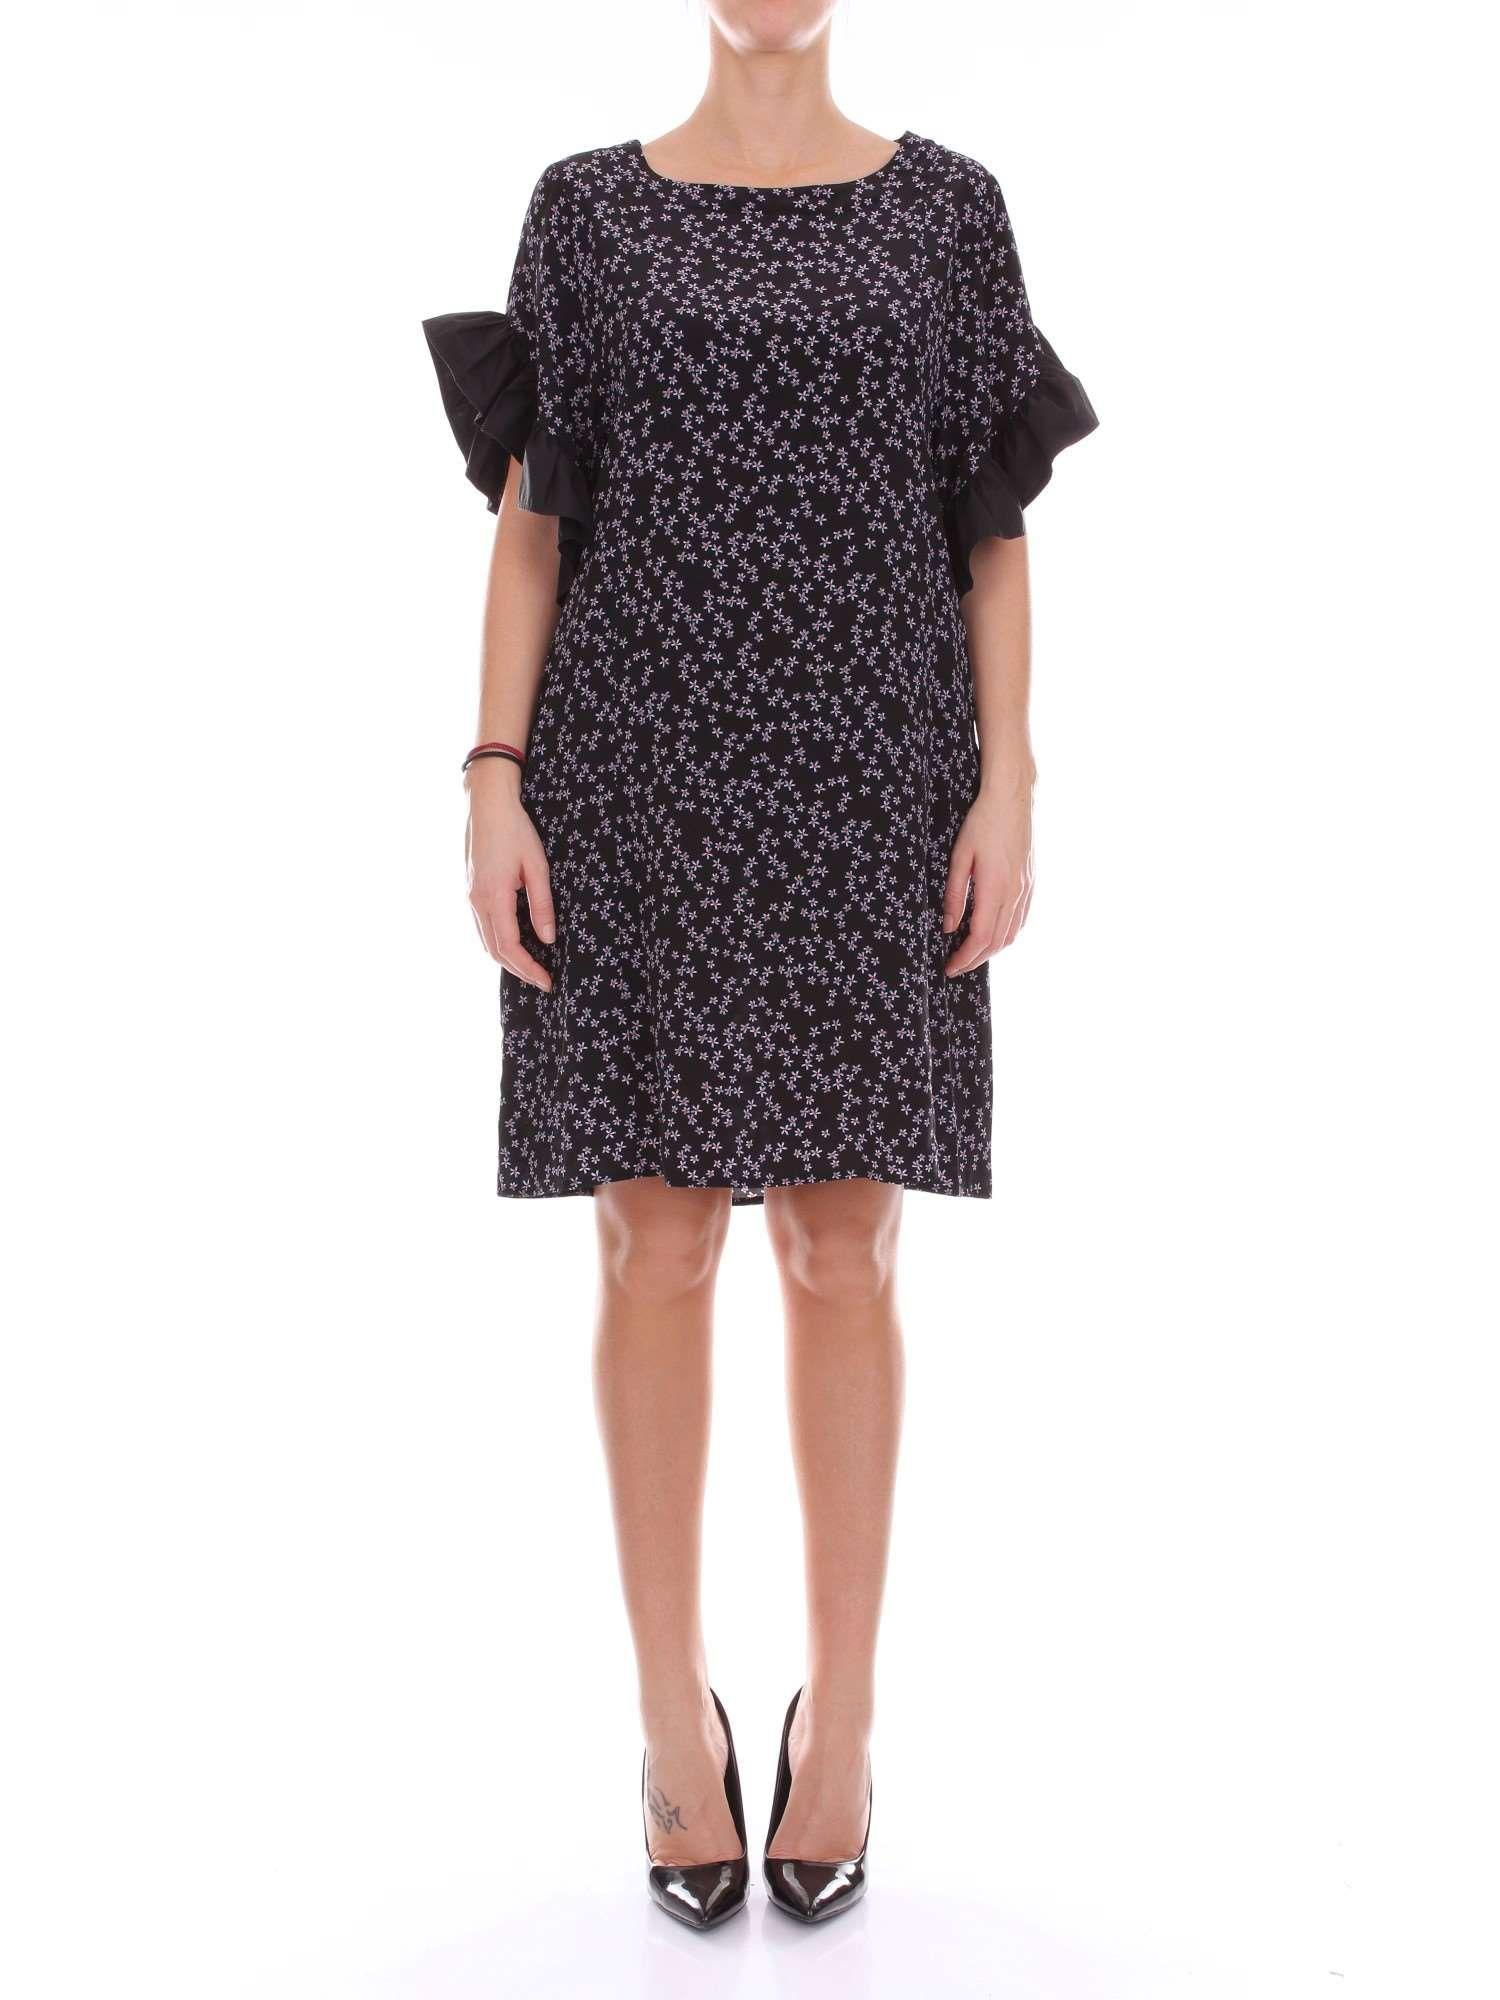 classic buy detailed pictures Attic And Barn Black Silk Dress in Black - Lyst